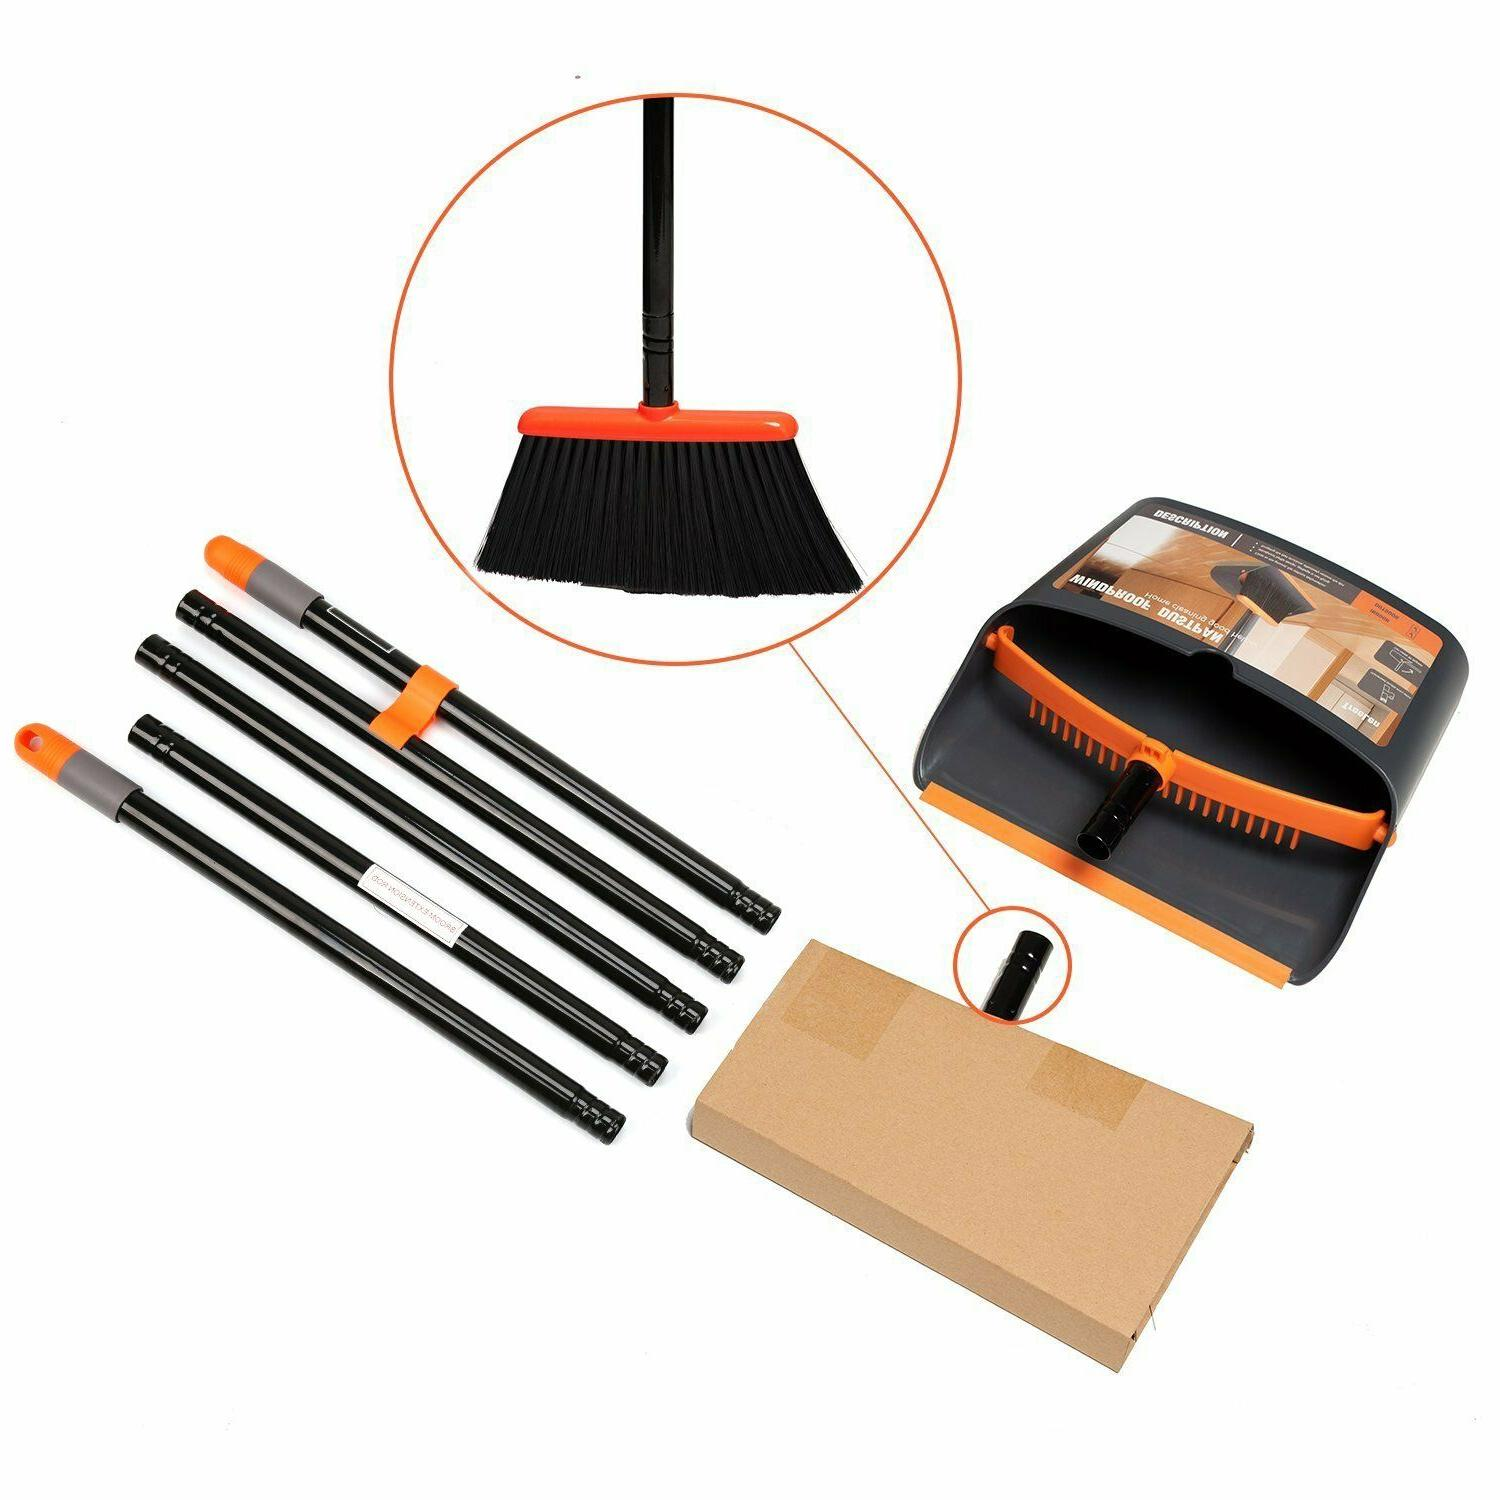 Dust Pan and Broom/ Dustpan Cleans with Home Kitchen